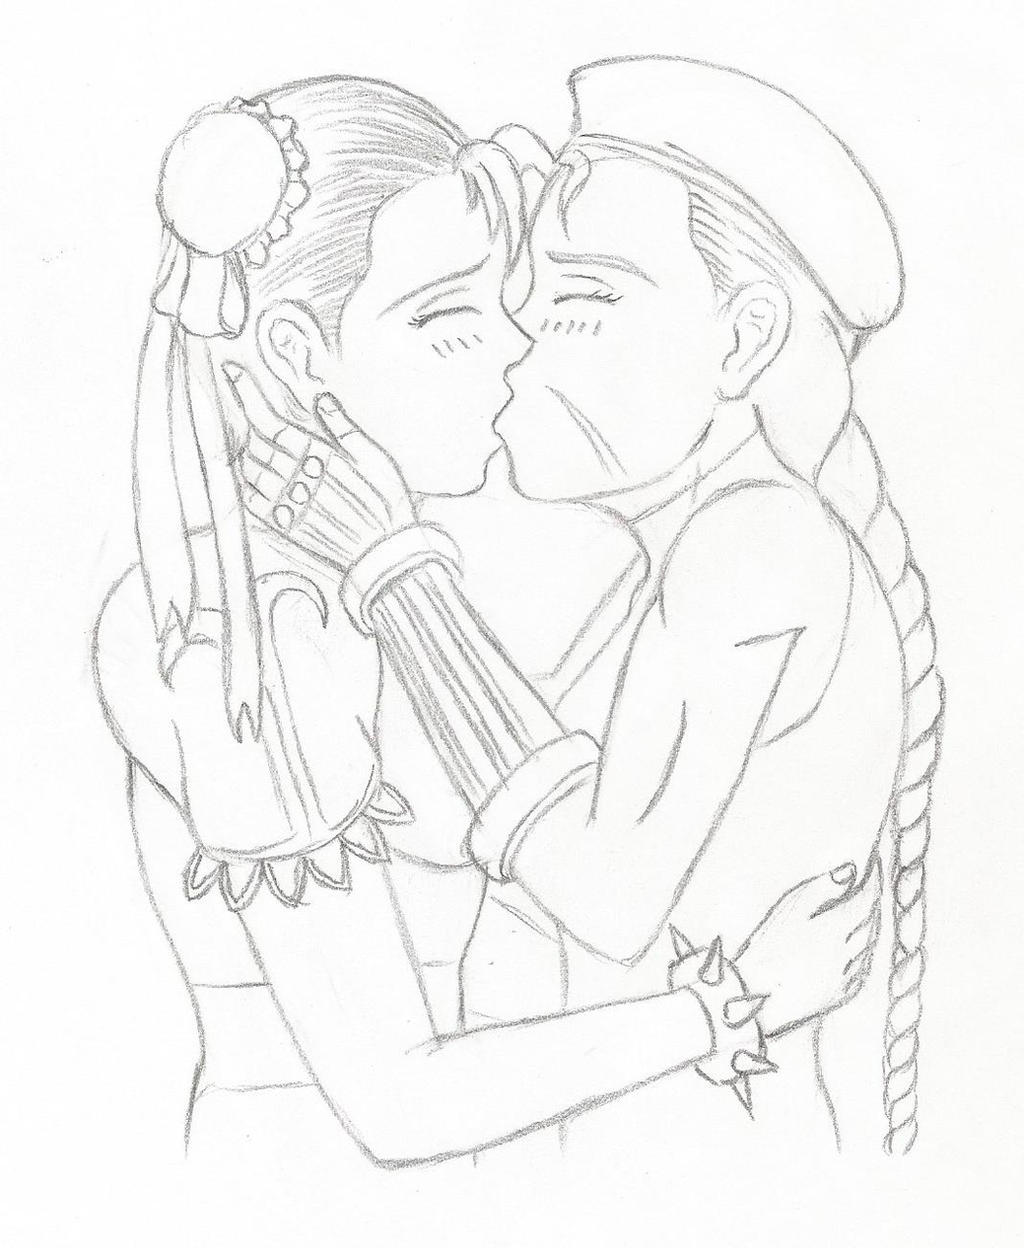 Cammy and Chun kiss - sketch by Autoclave07